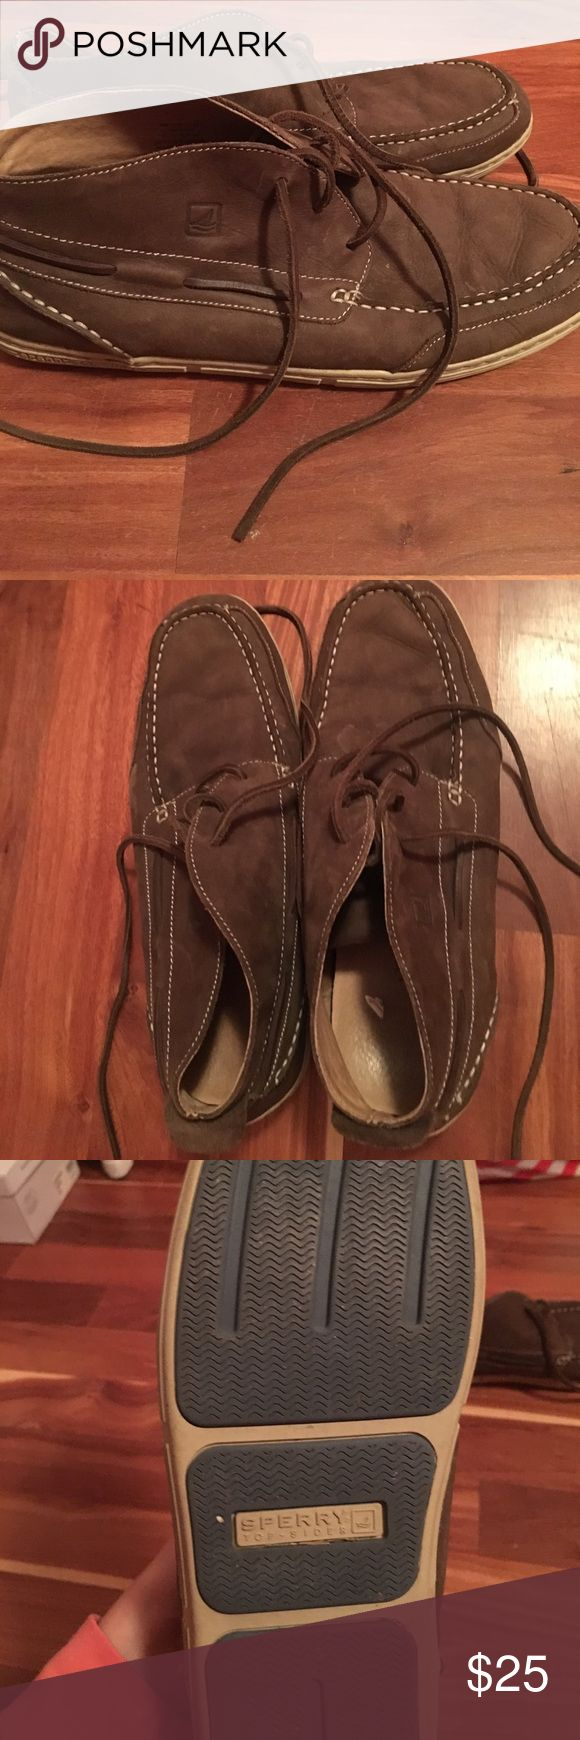 Mens Sperry Leather Shoes Barely worn, a great show for men! Sperry Top-Sider Shoes Boat Shoes